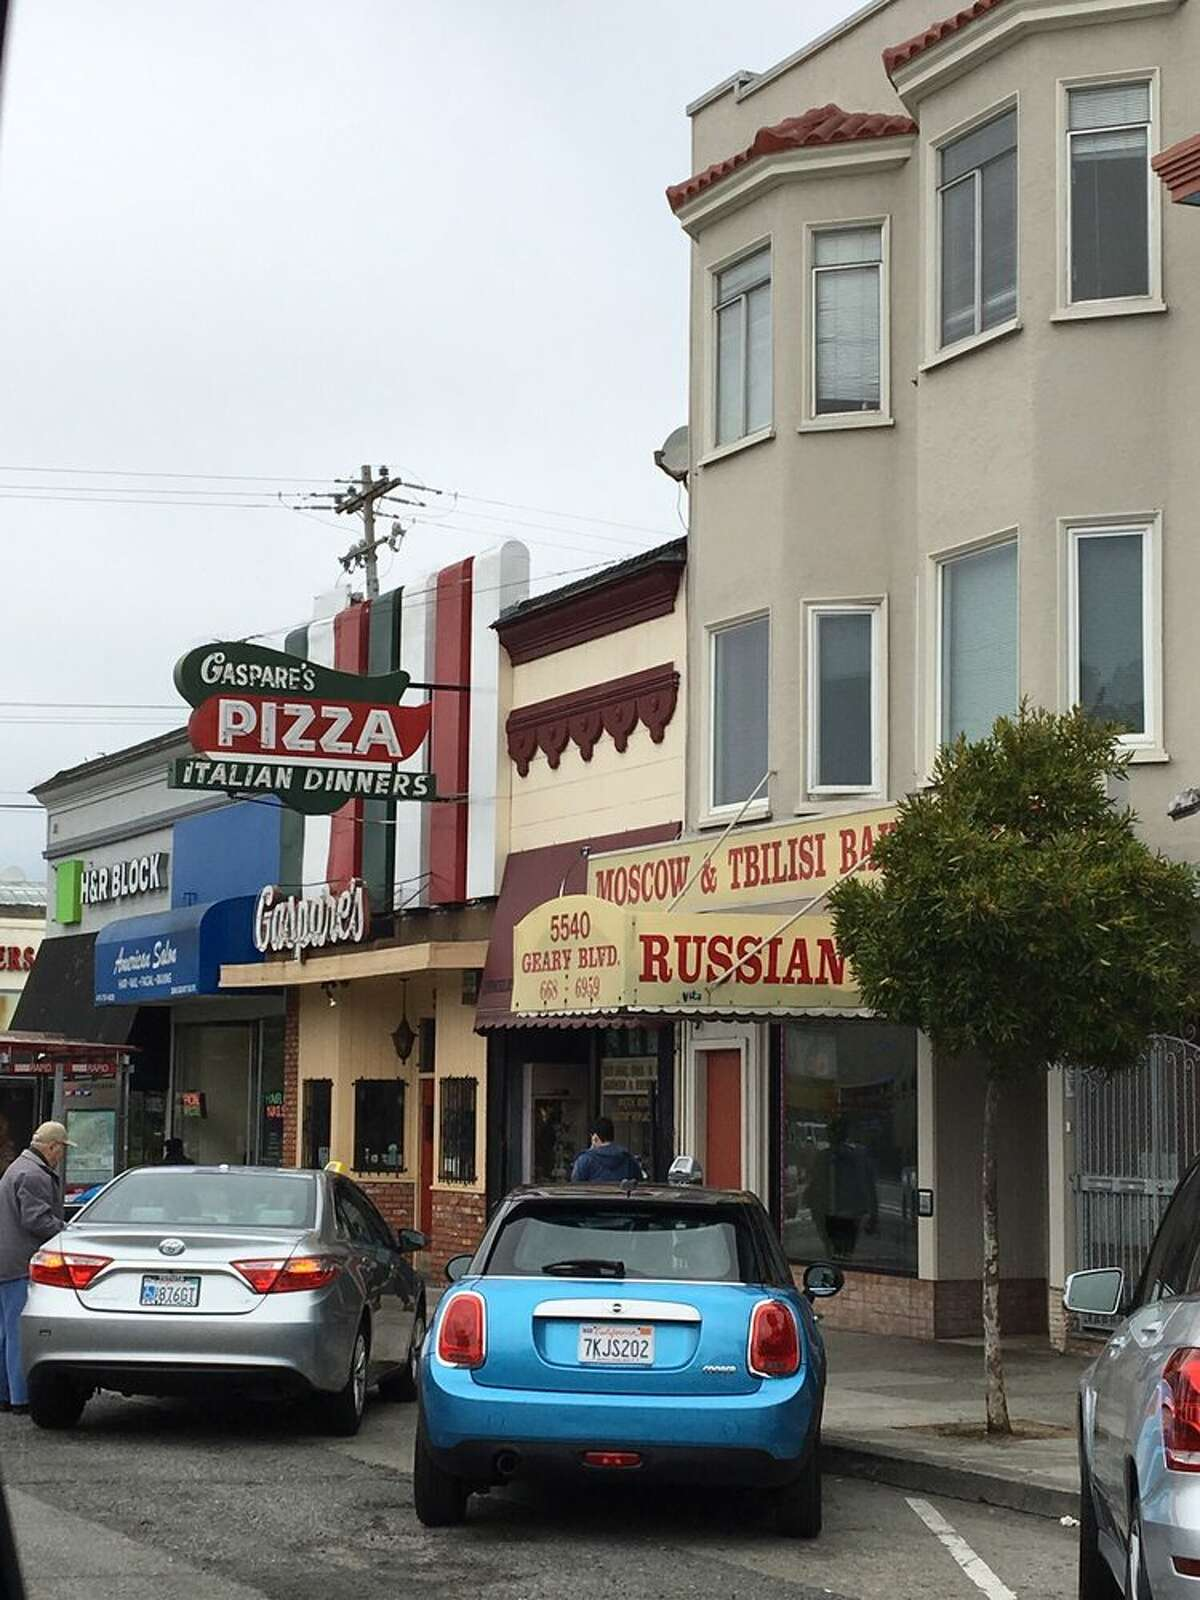 Gaspare's Pizza House & Italian Restaurant 5546 Geary Blvd. Chronicle food critic Michael Bauer wrote in 2007,